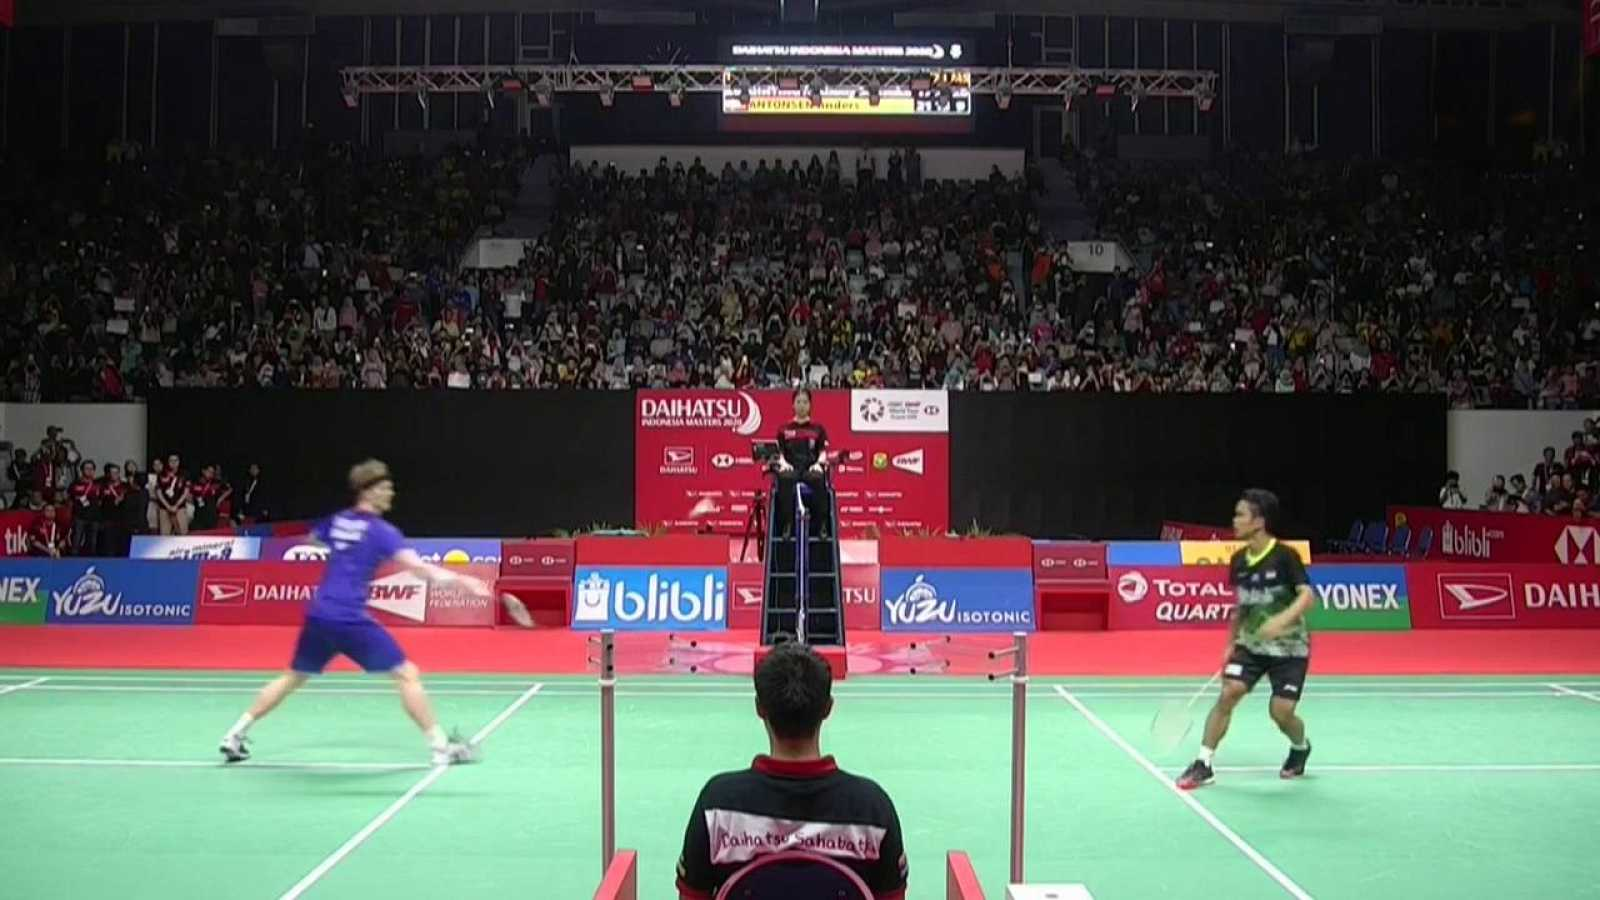 Bádminton - Indonesia Masters Final Individual masculina: A.S. Ginting - A. Antonsen - ver ahora